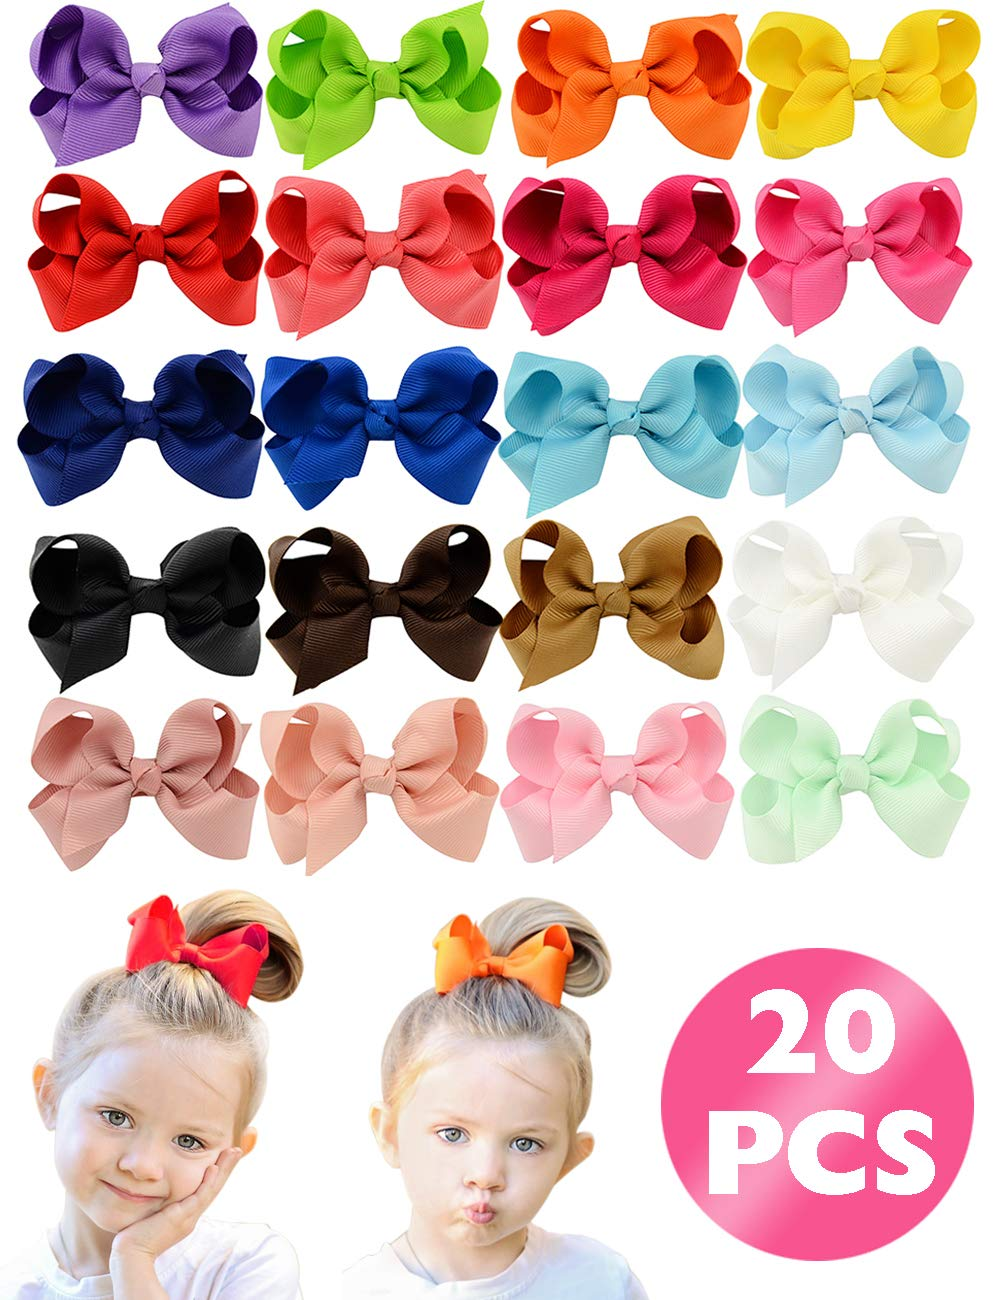 """HLIN 20 Pcs 3"""" Grosgrain Ribbon Boutique Hair Bows Alligator Clips Hand Made for Baby Girls Toddlers Kids"""